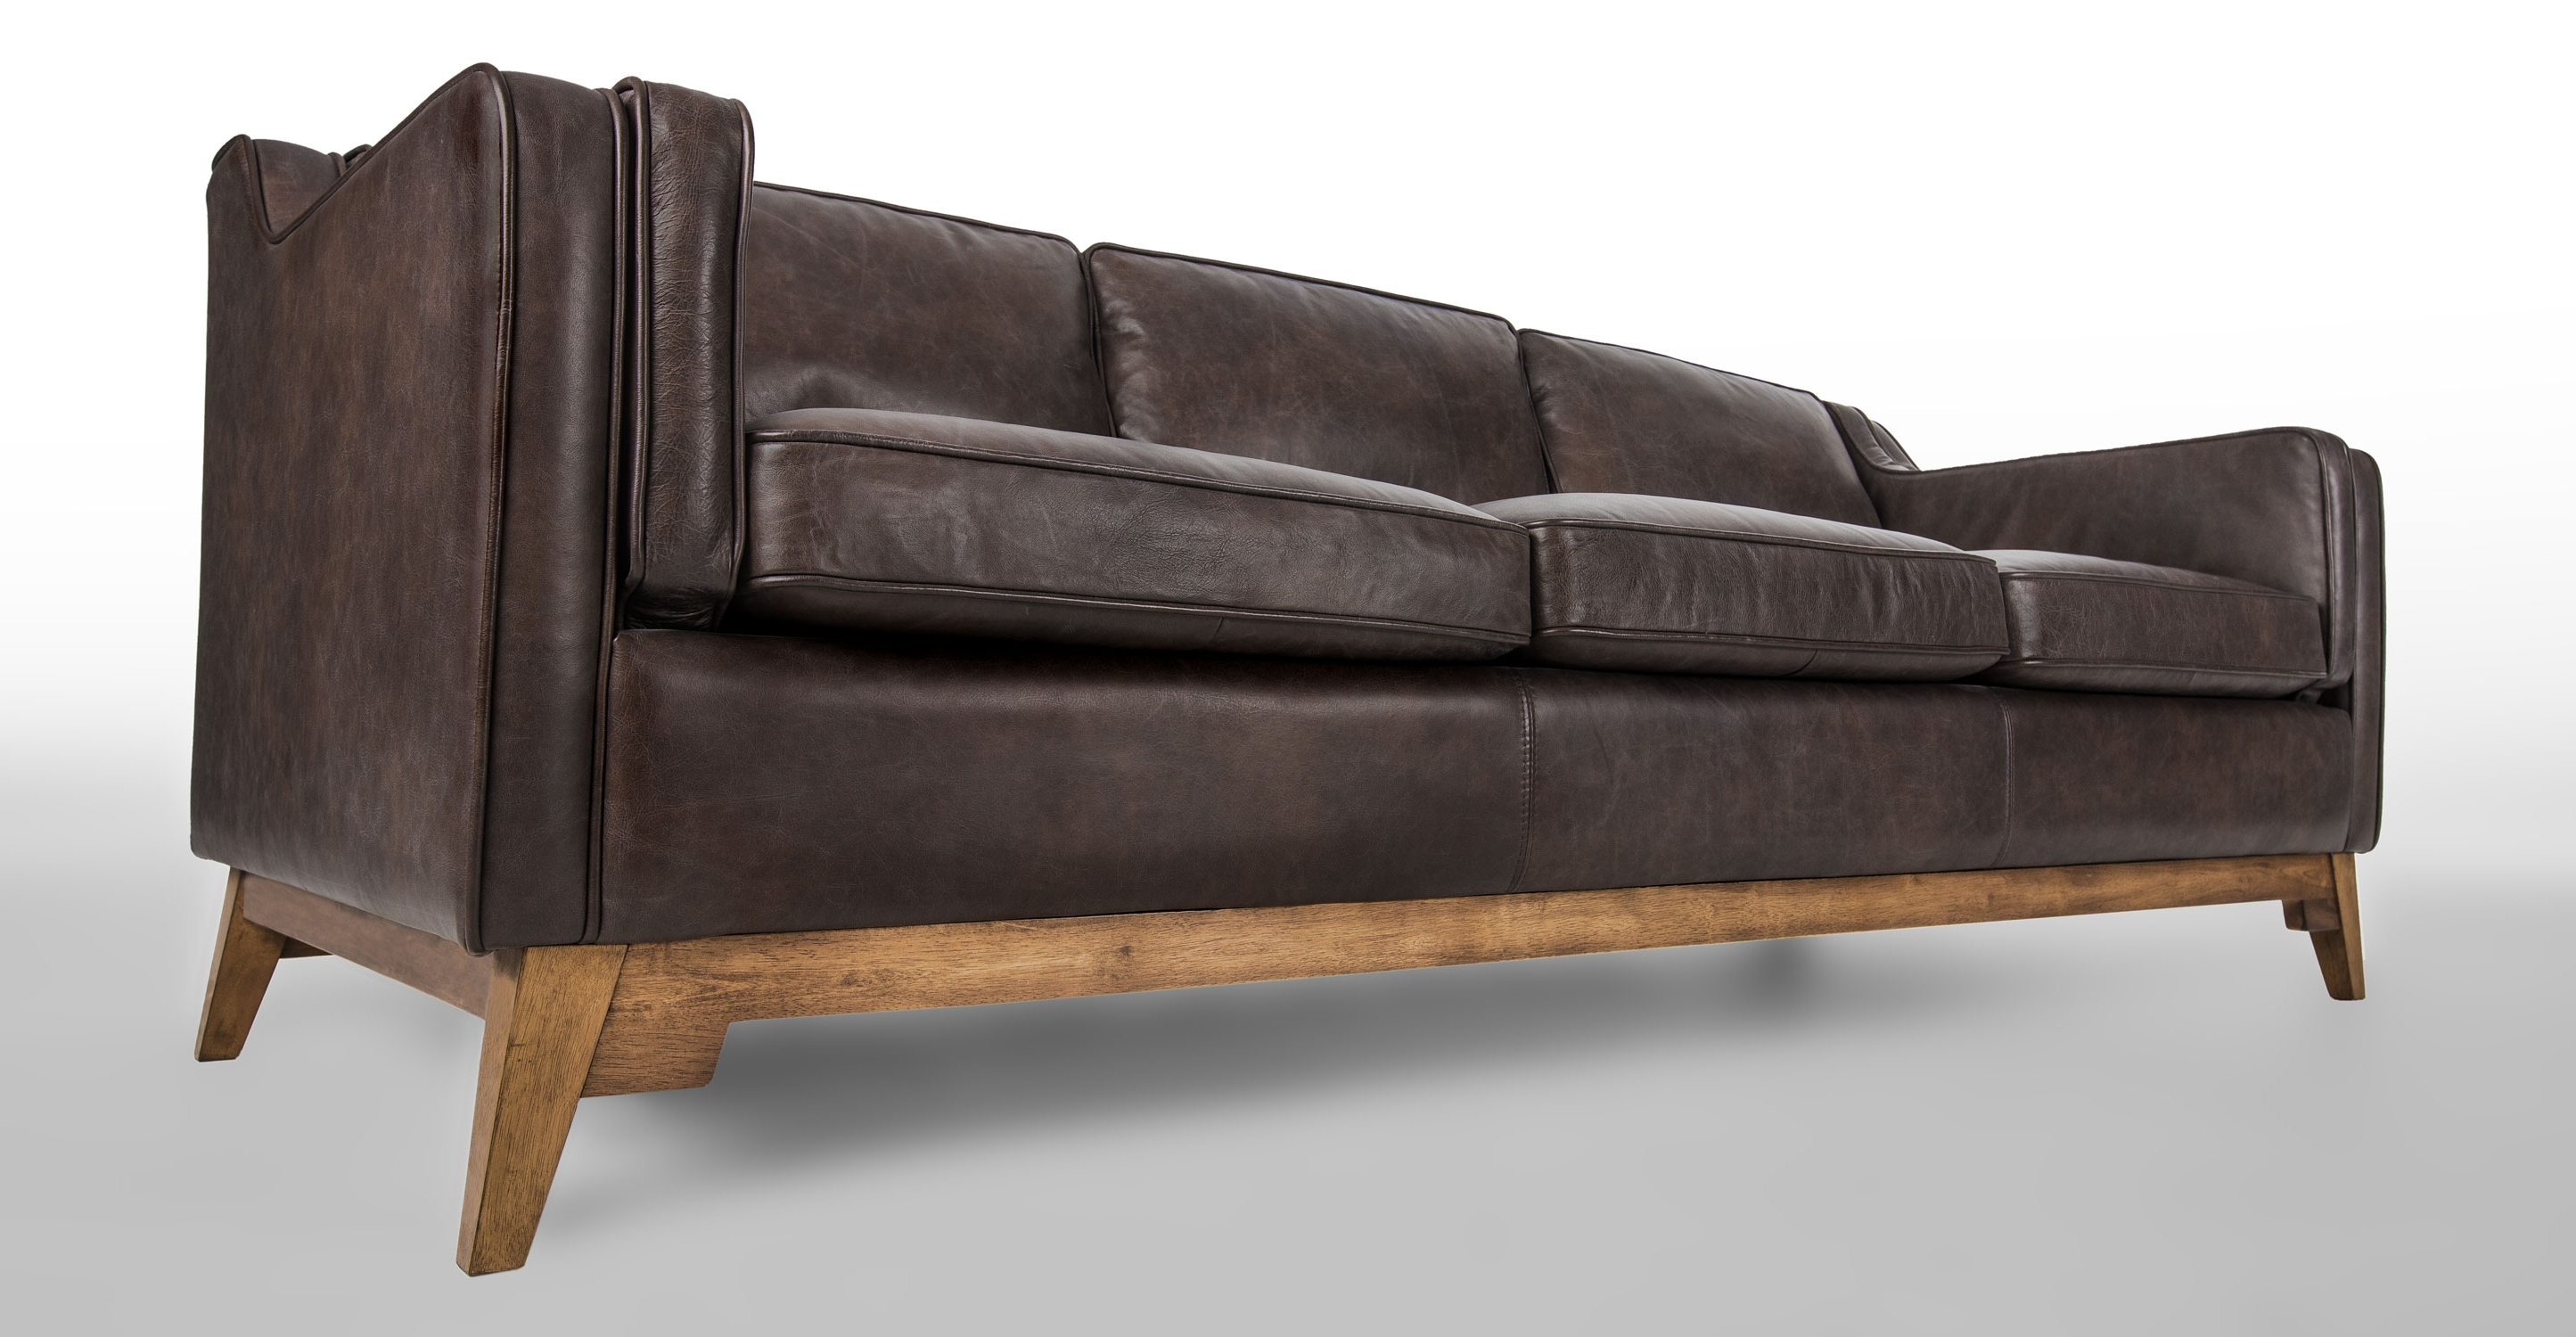 20 Best Collection Of Oxford Sofas